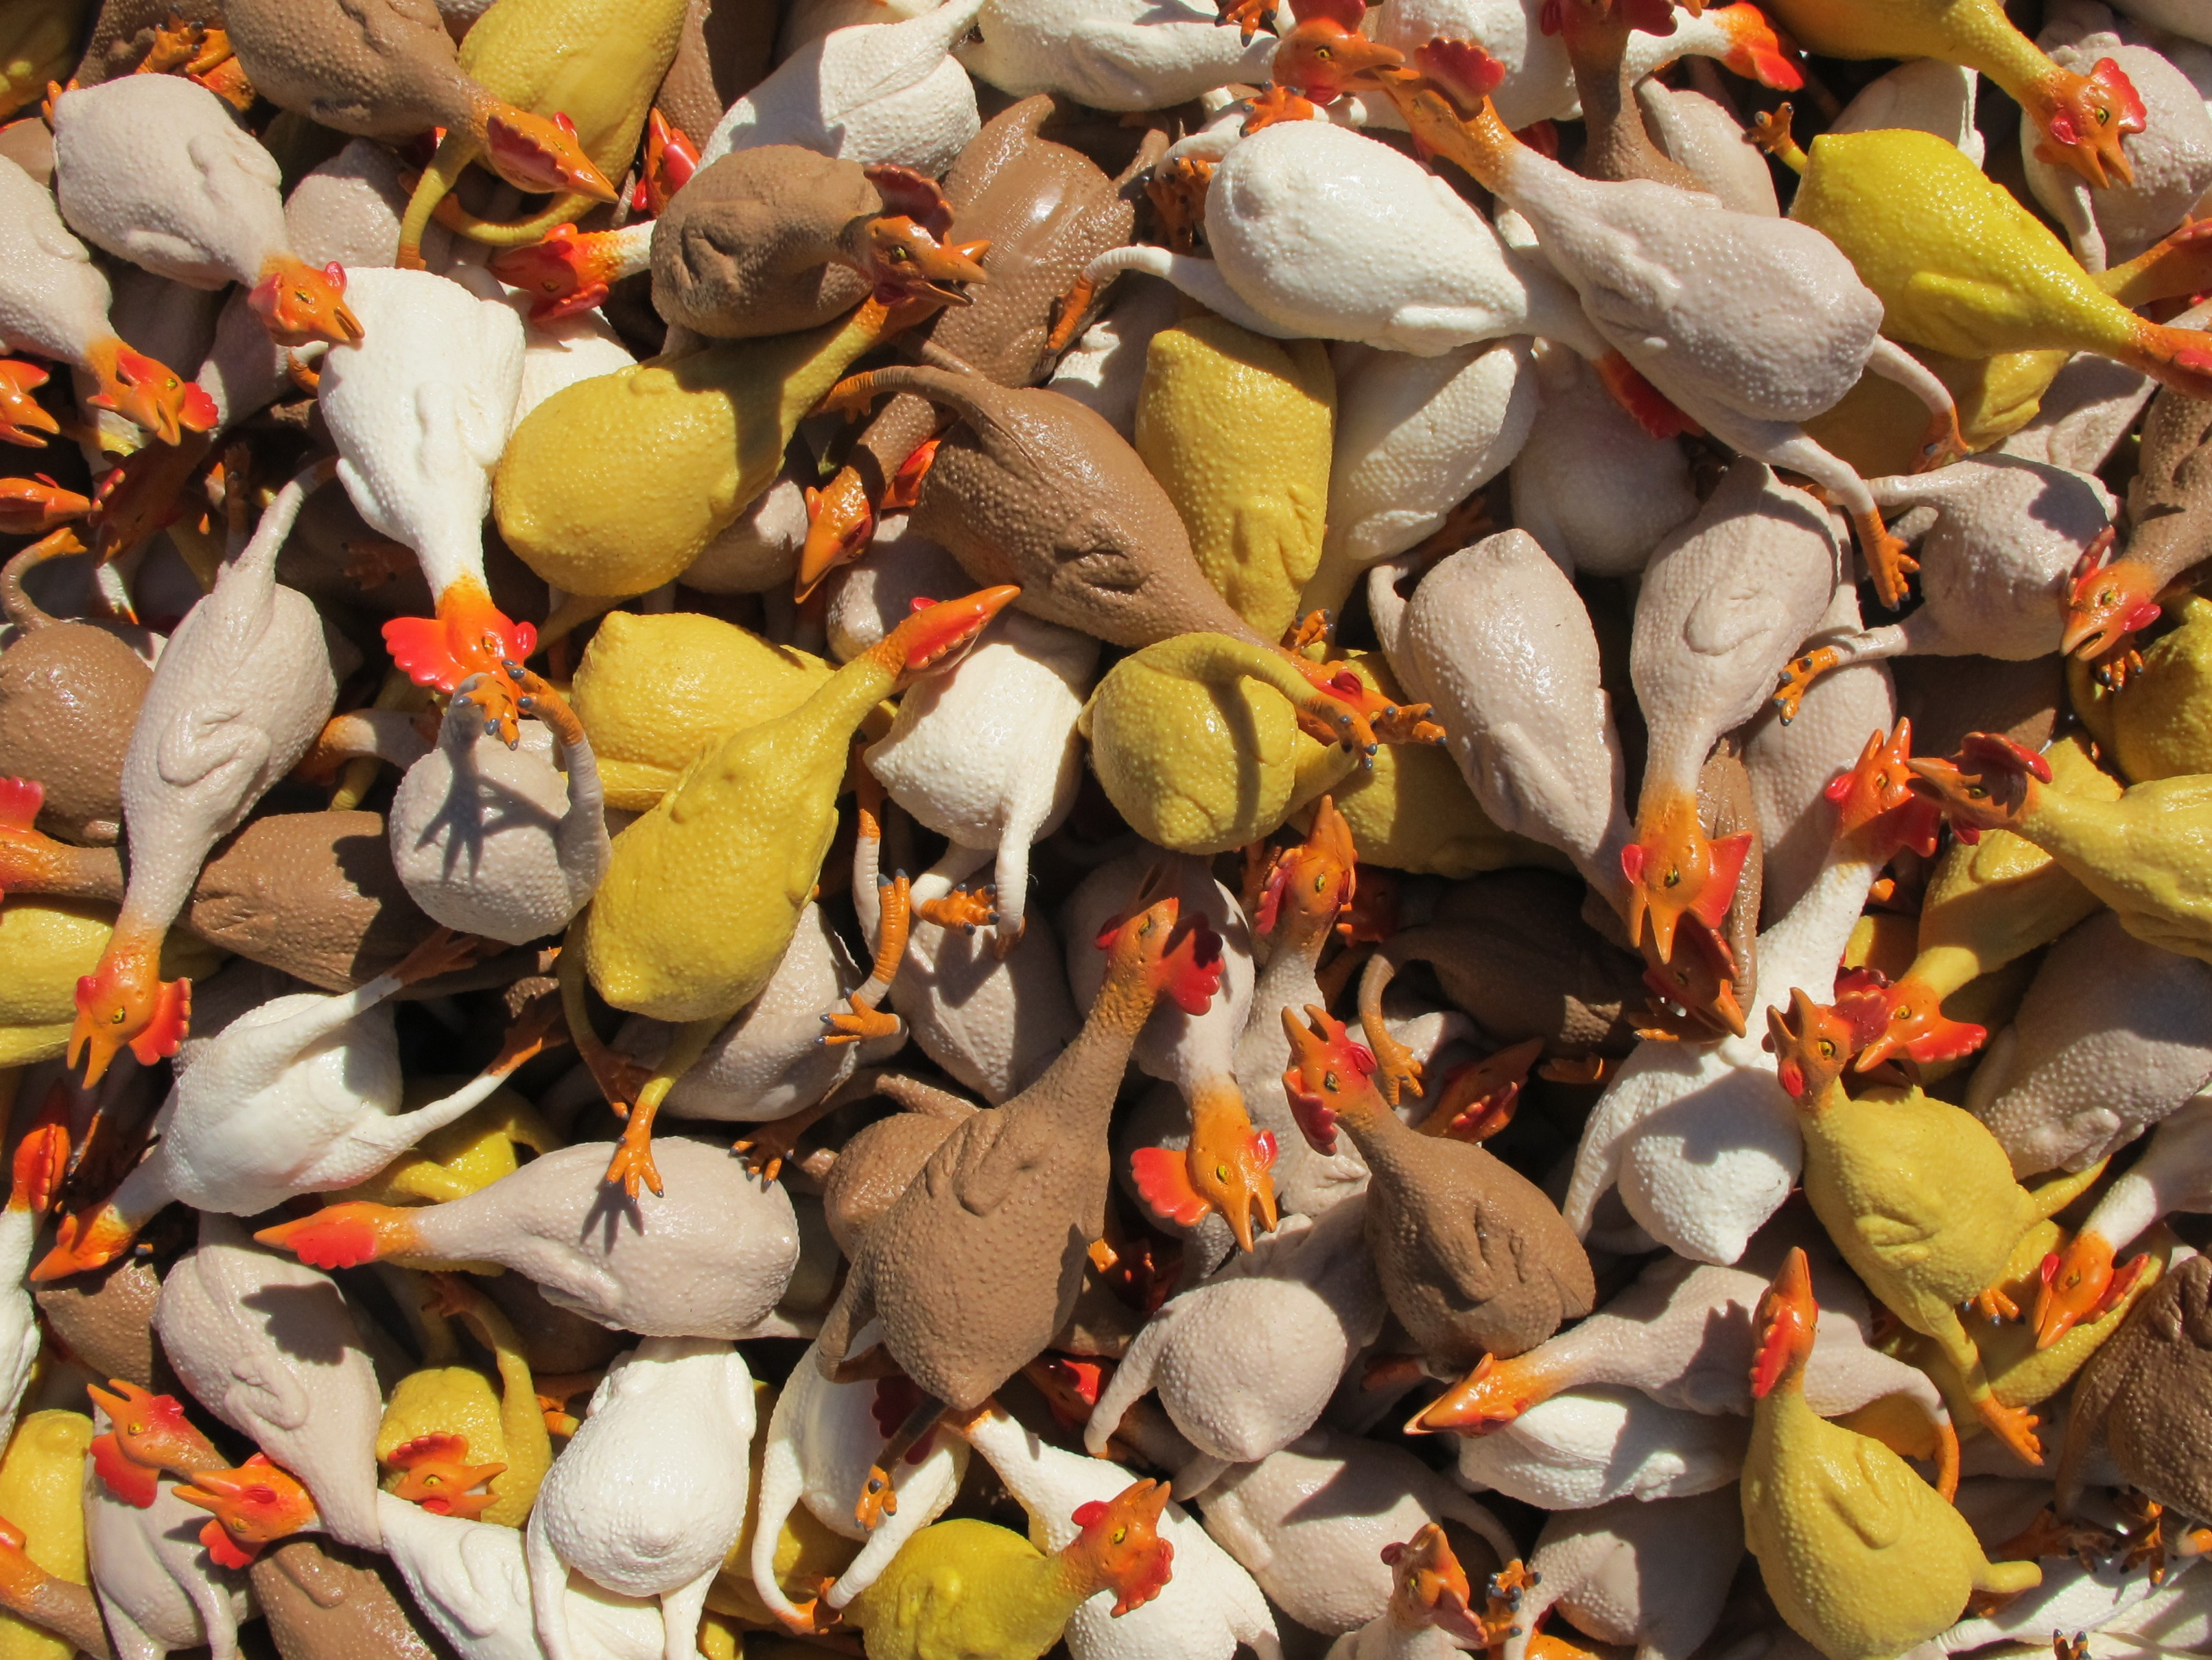 World Population By Race >> Flickin' Chickens for a new Guinness World Record